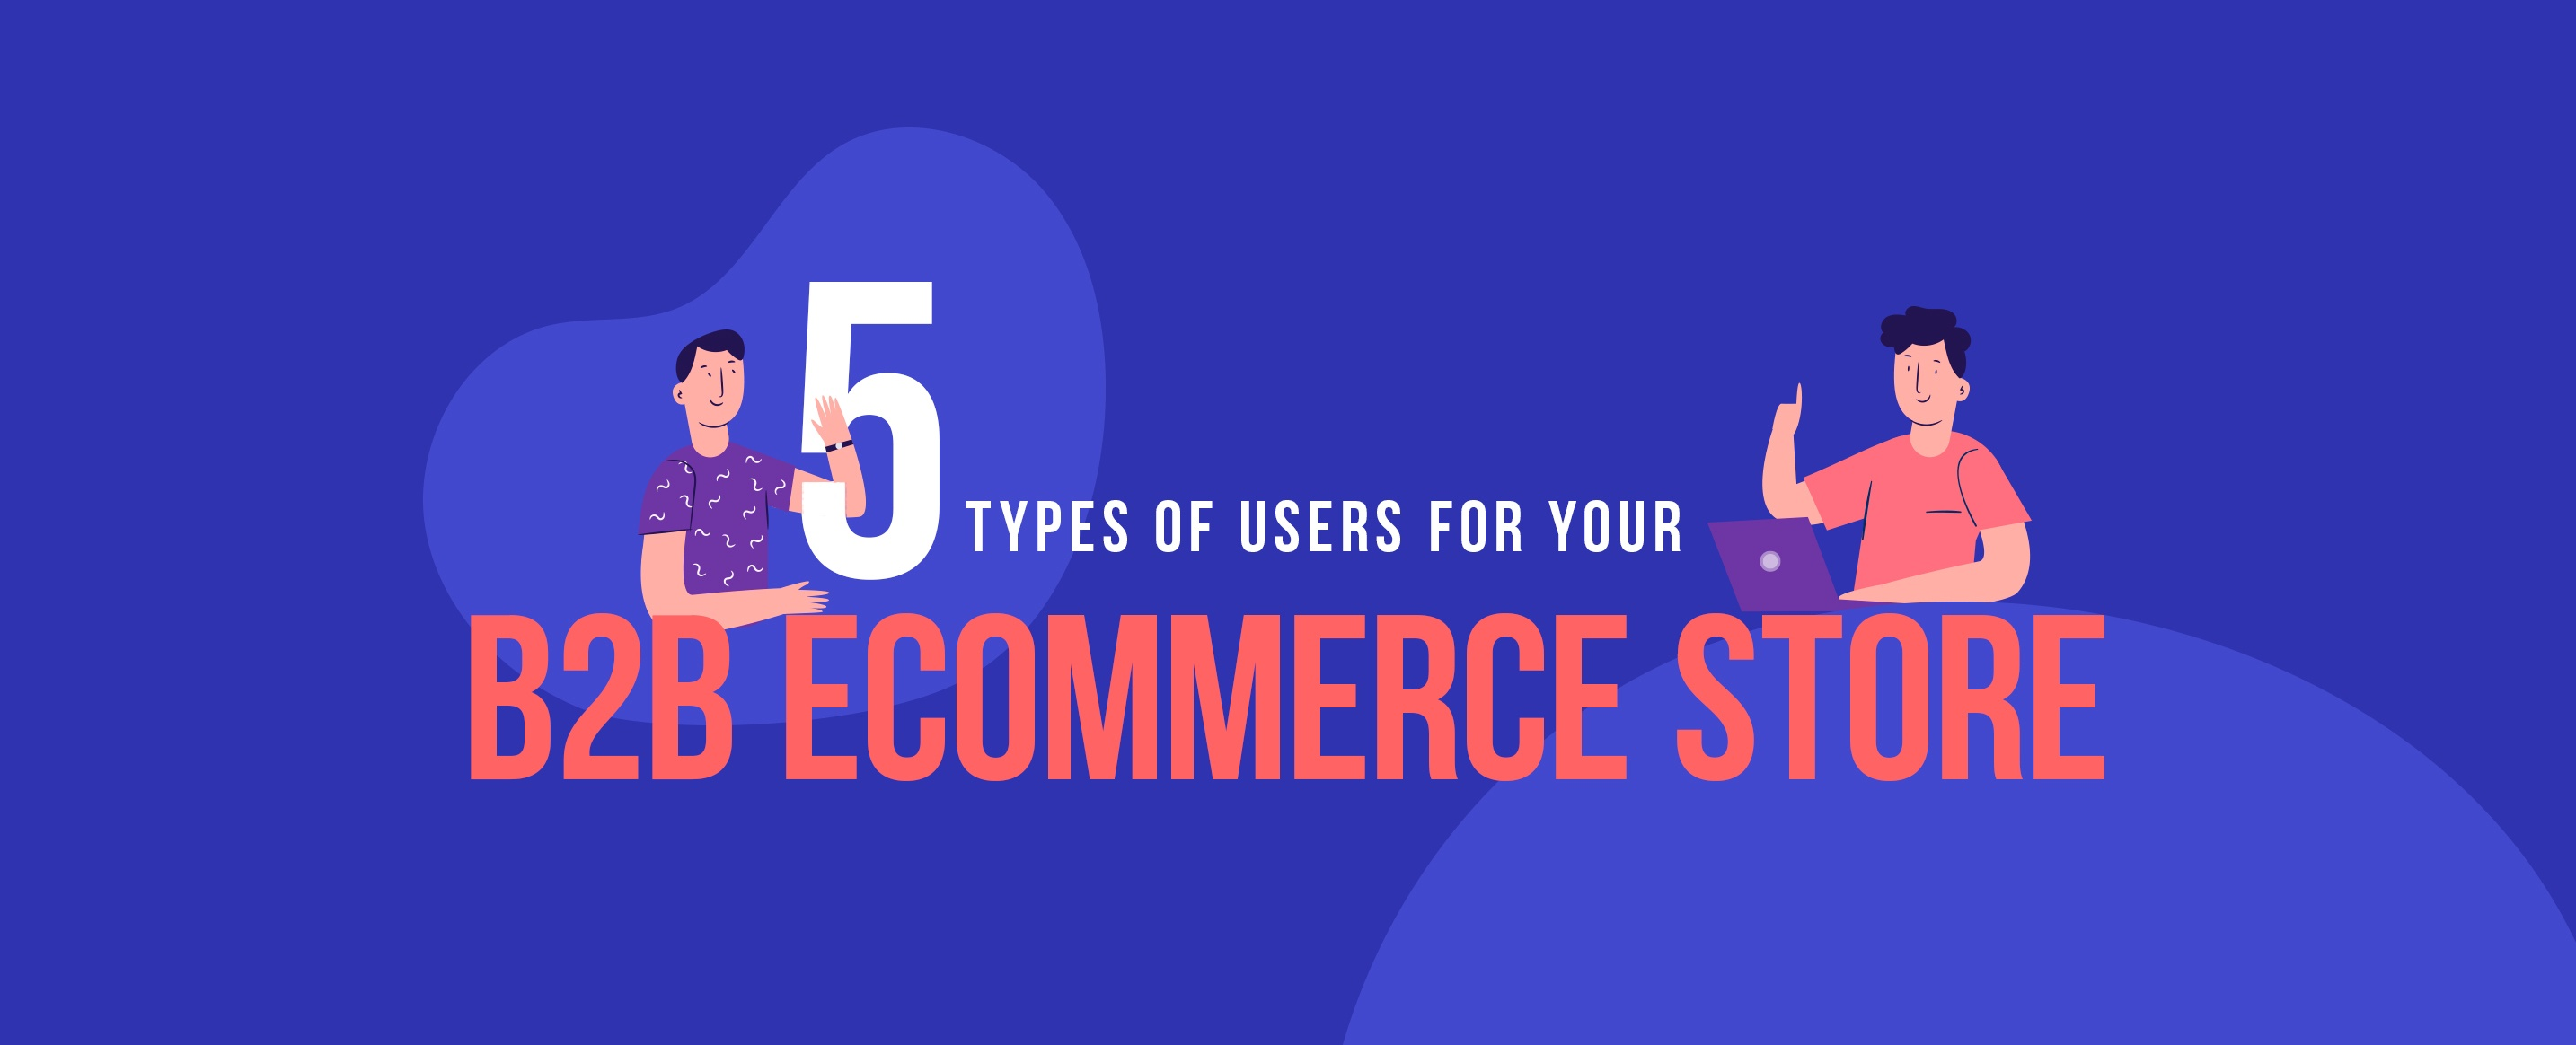 5-Types-of-Users-for-your-B2B-Ecommerce-Store